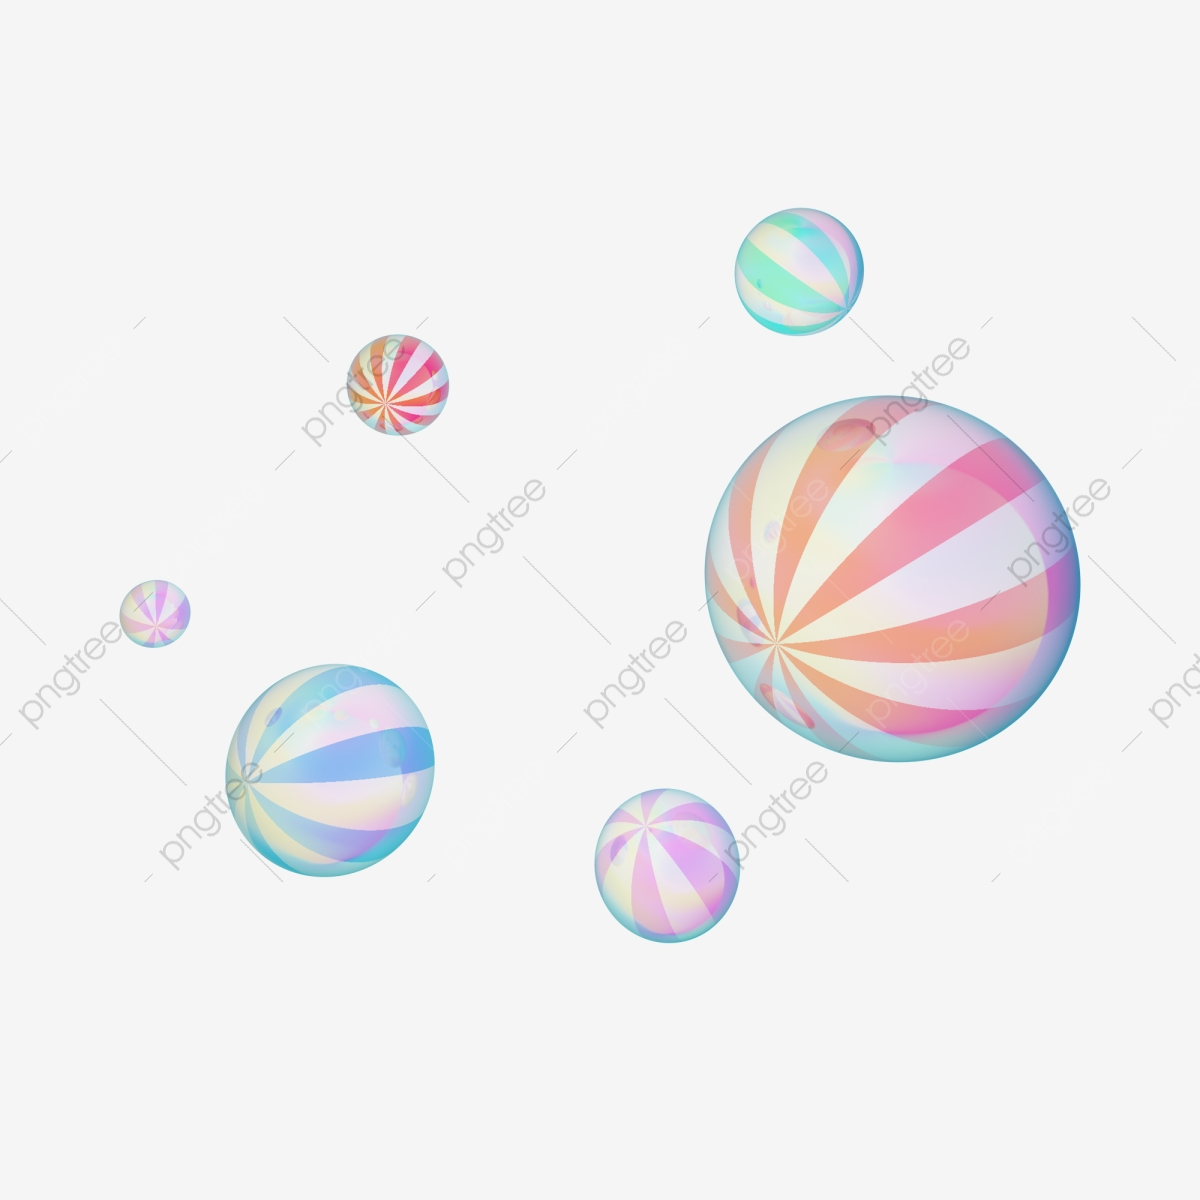 Marble C4d Macaron Wind Teenage Style Suspended Ball Decorative